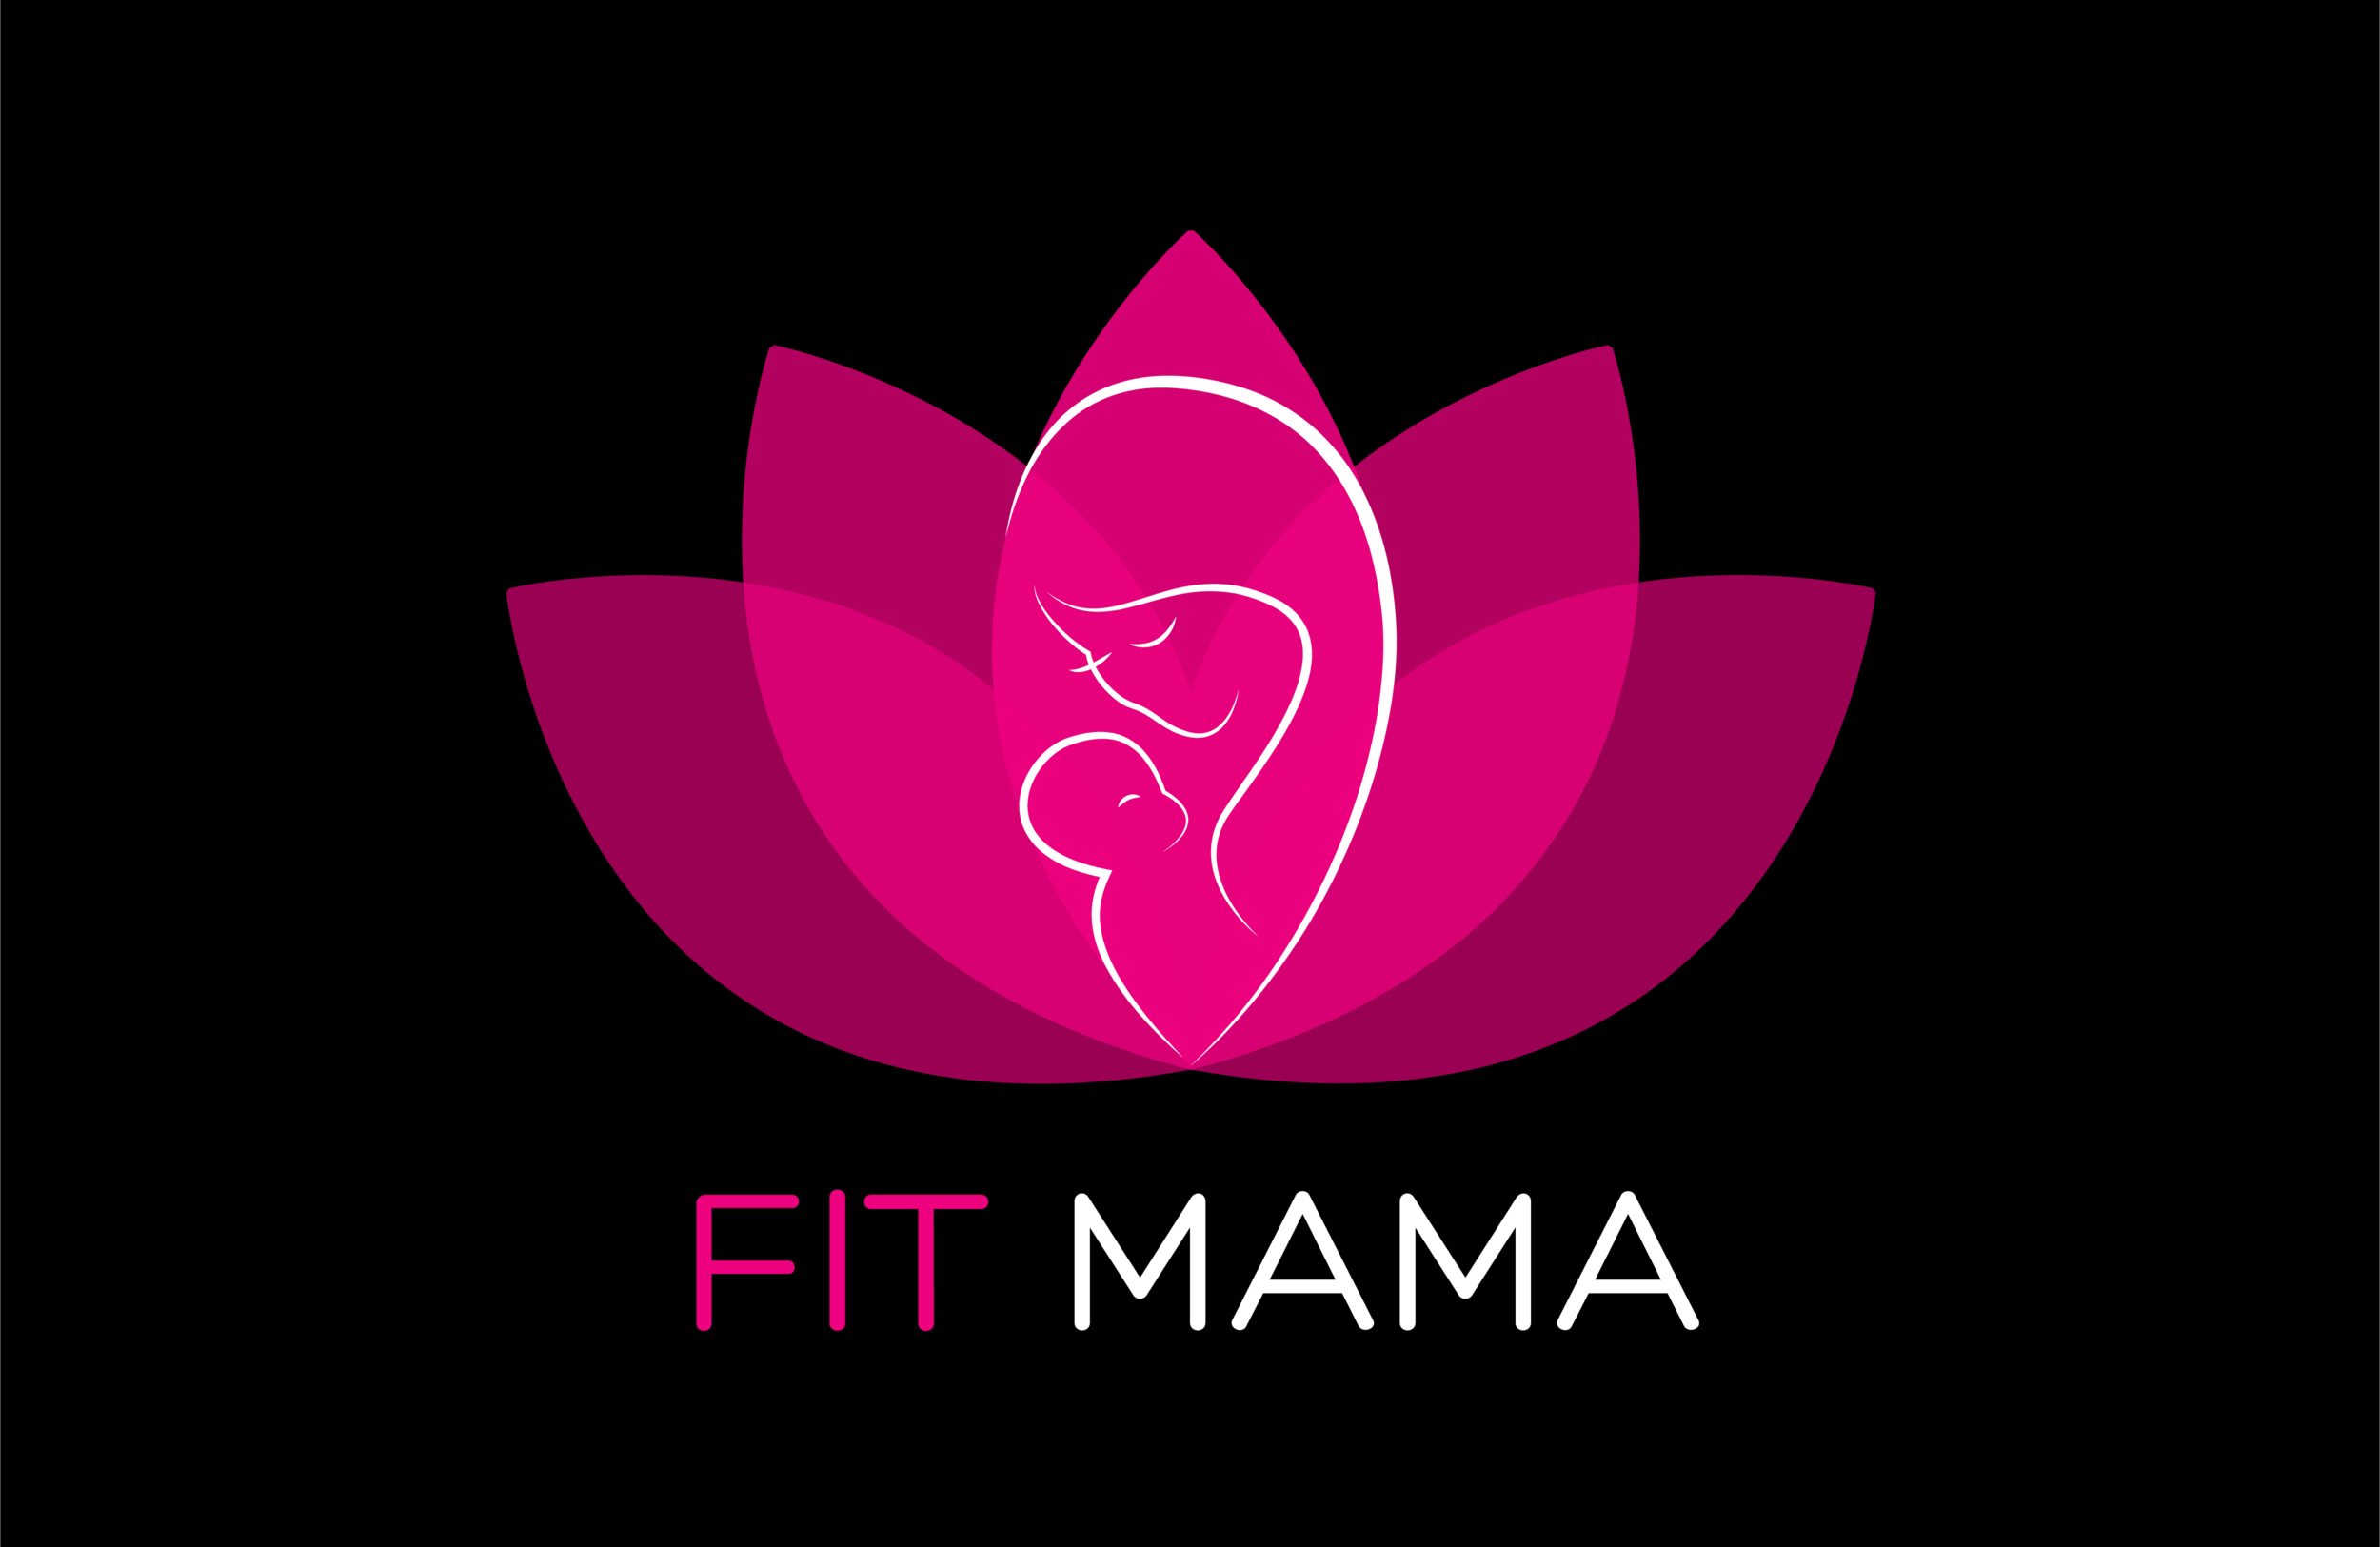 FitMama_Carousel_2-01.png